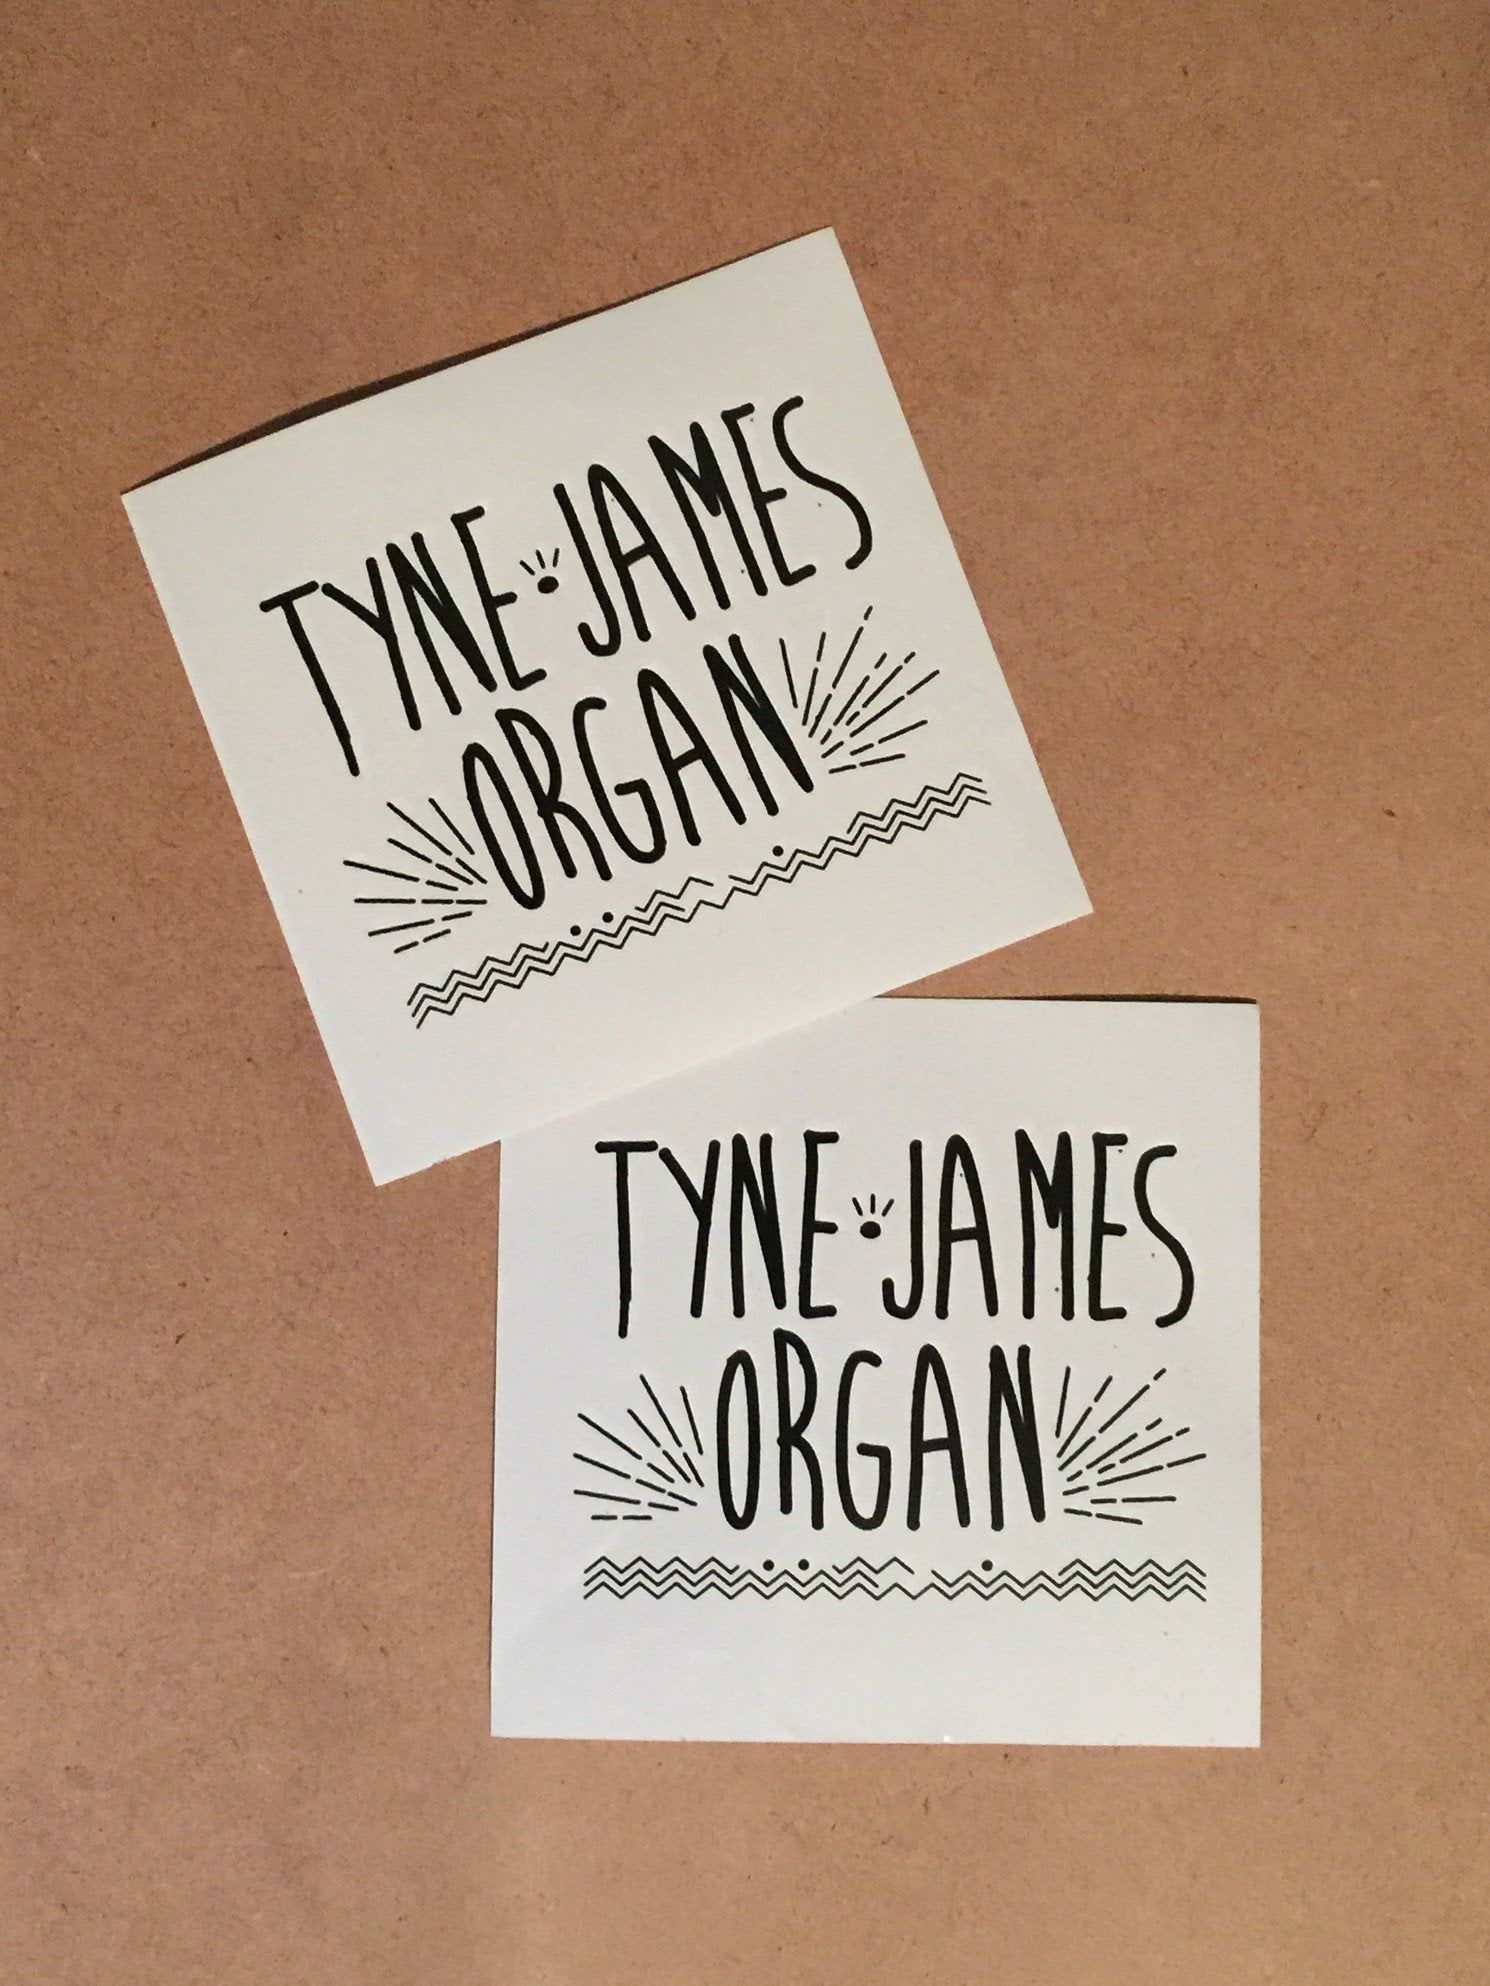 Tyne-James Organ - Sticker